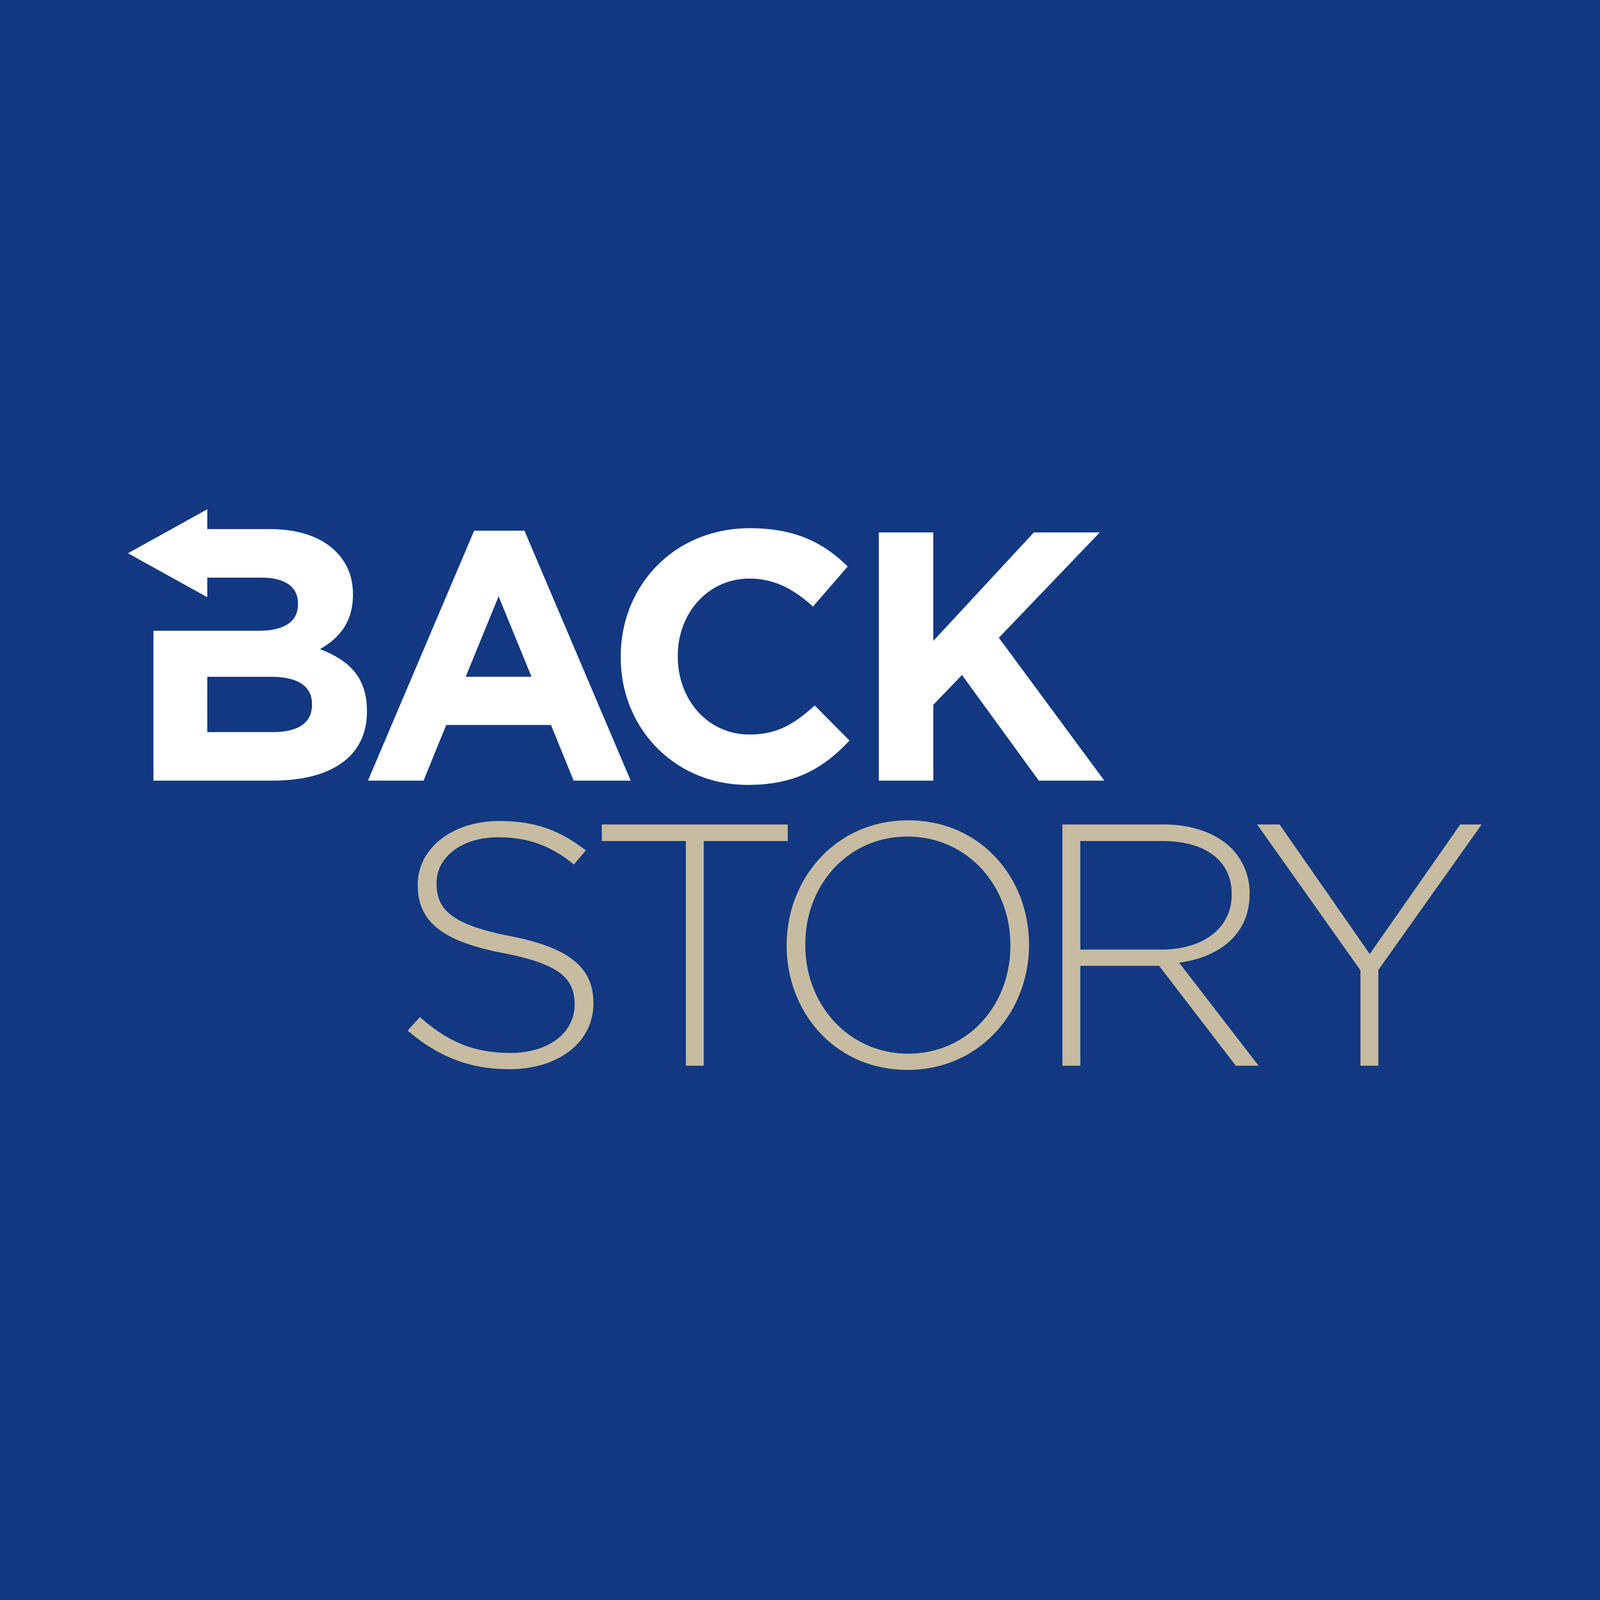 331: The End of the Road: BackStory and the History of Finales in America podcast episode